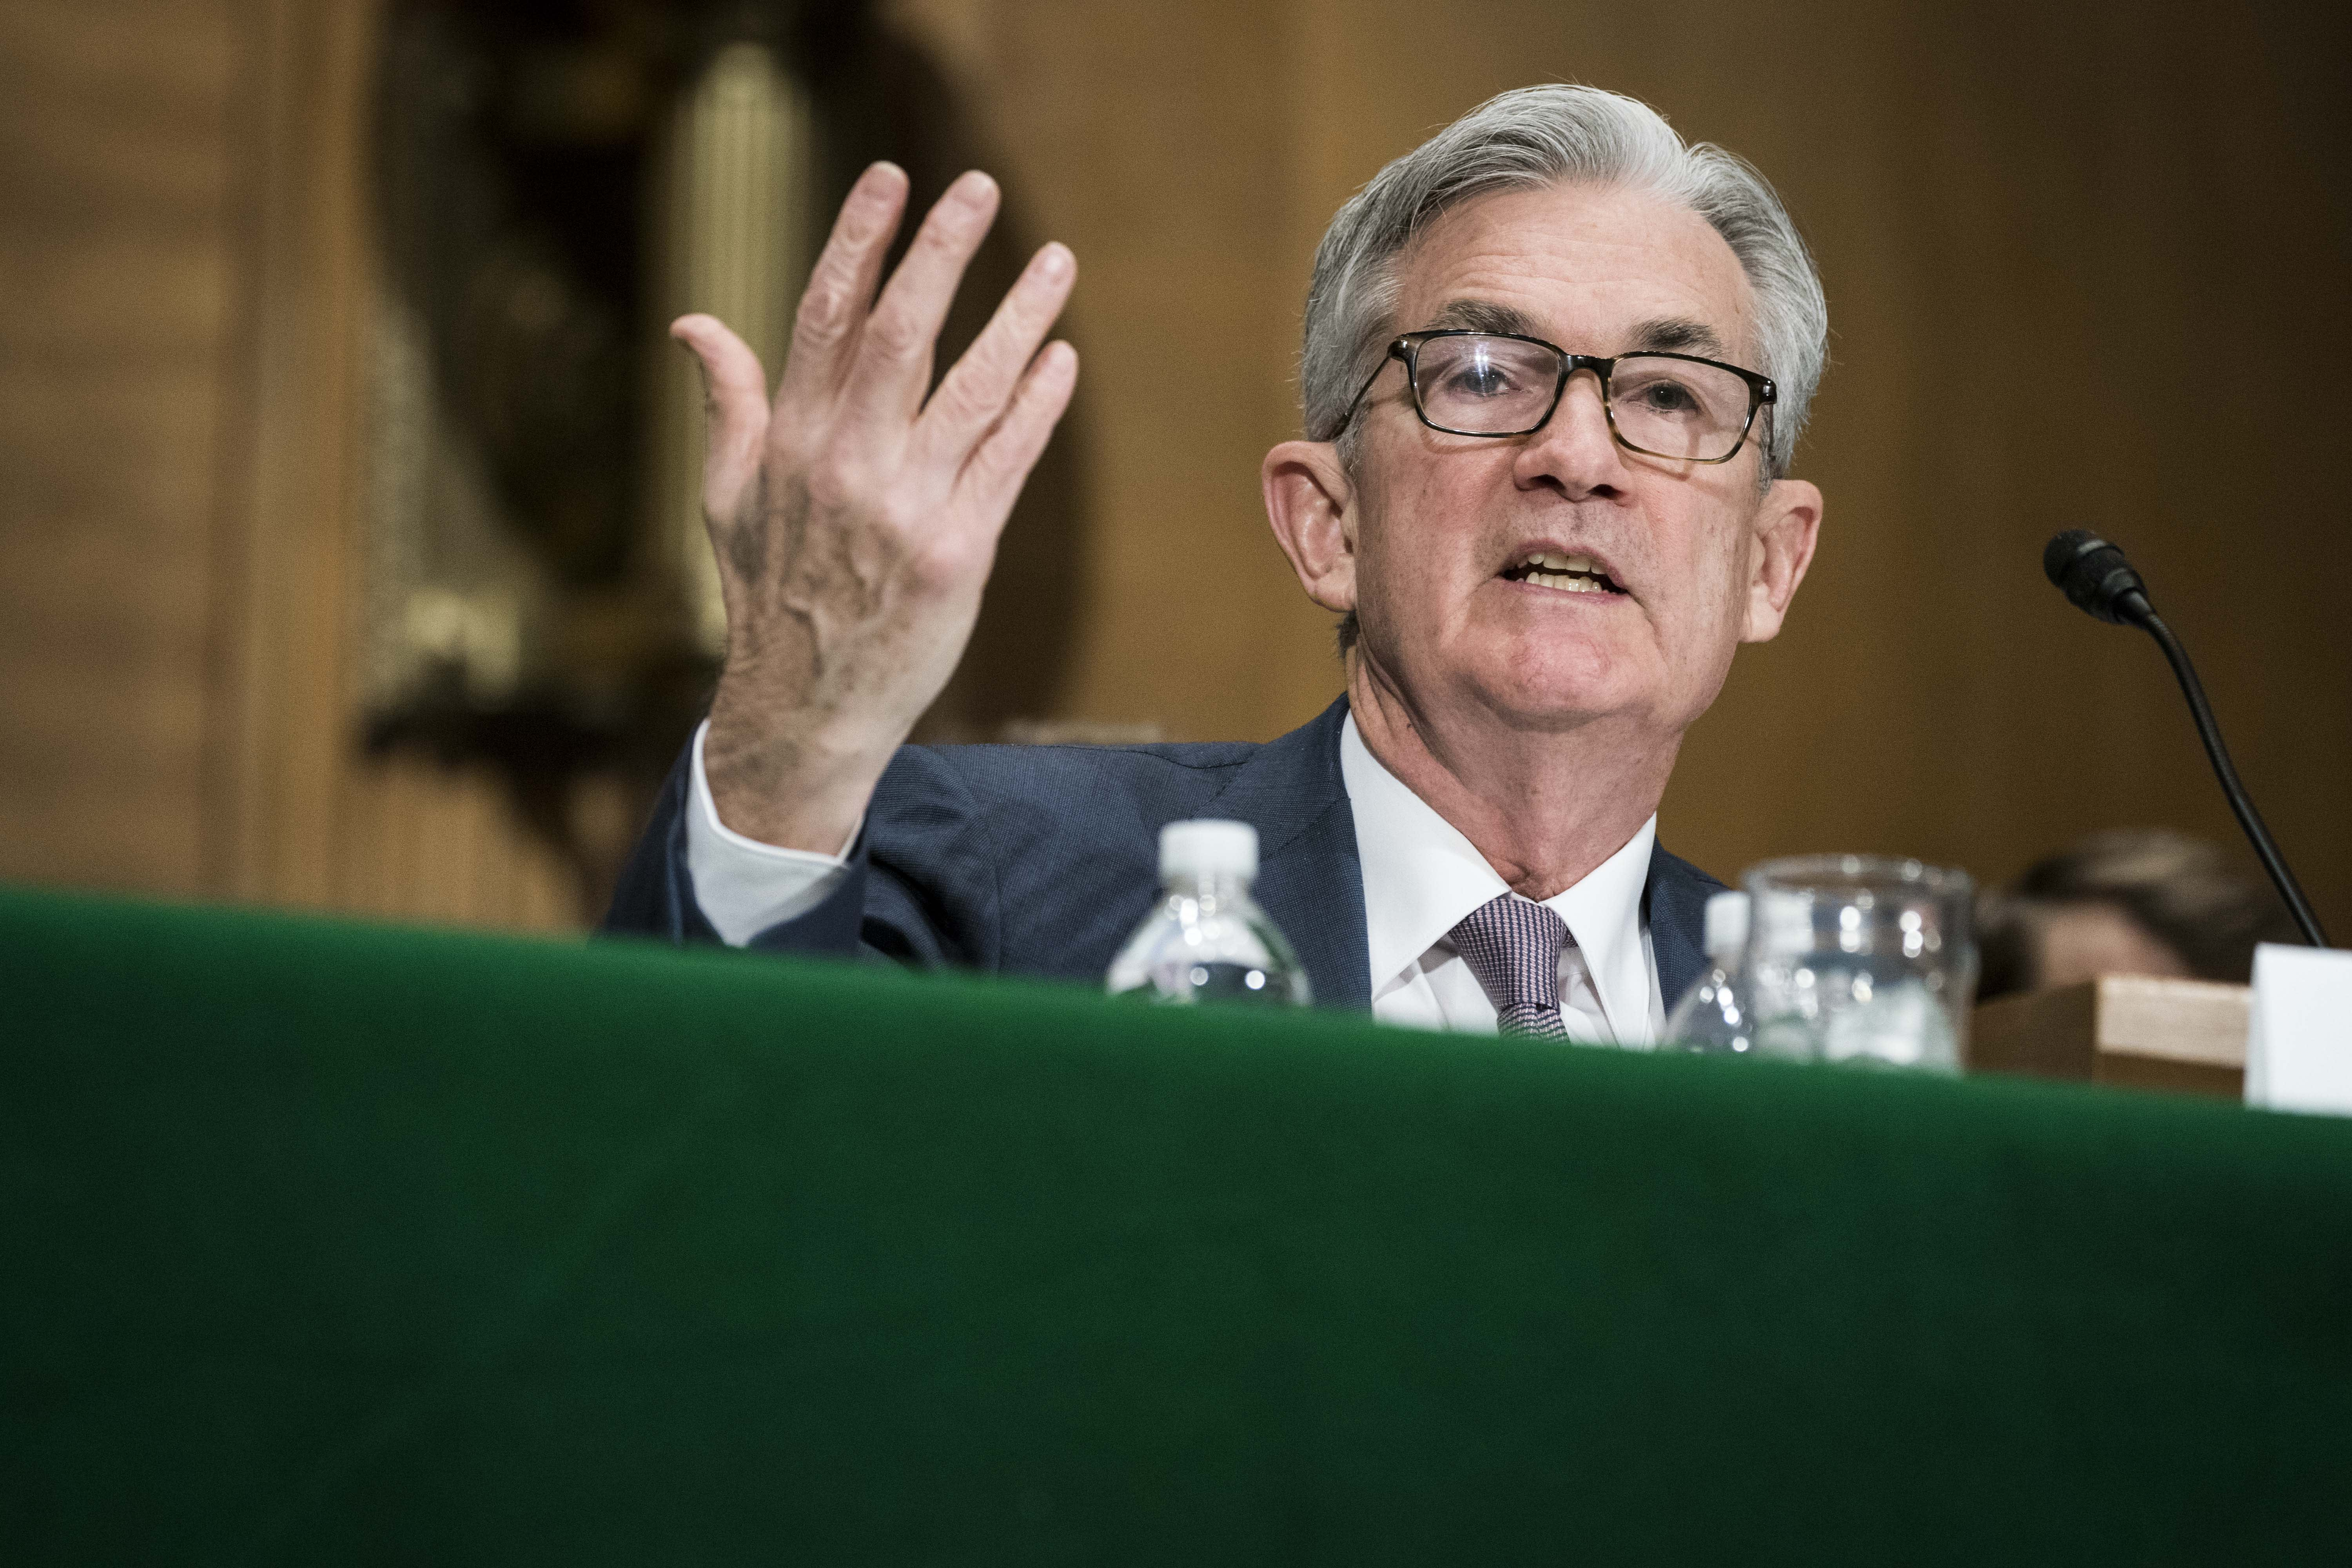 Powell warns of 'significant uncertainty' about the recovery and says small businesses are at risk